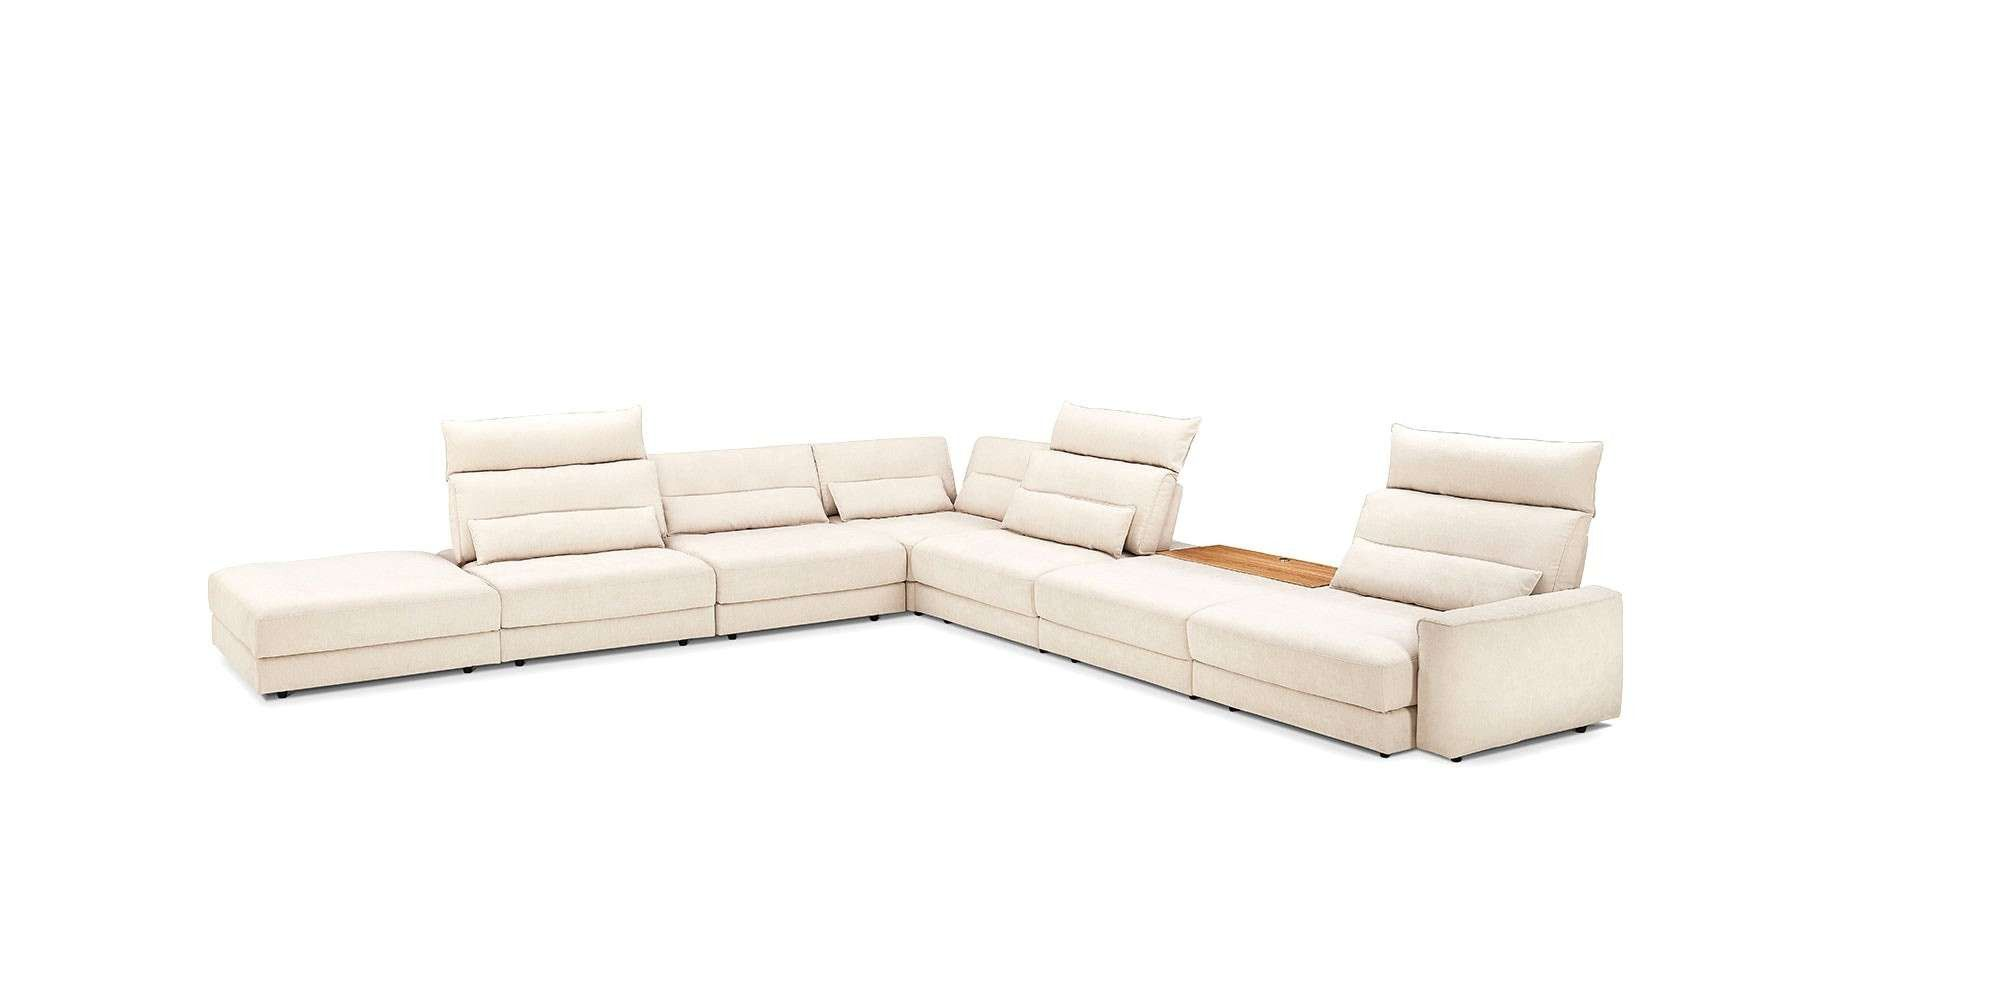 Atemberaubend Big Sofa Samt Couch Decor Sectional Couch